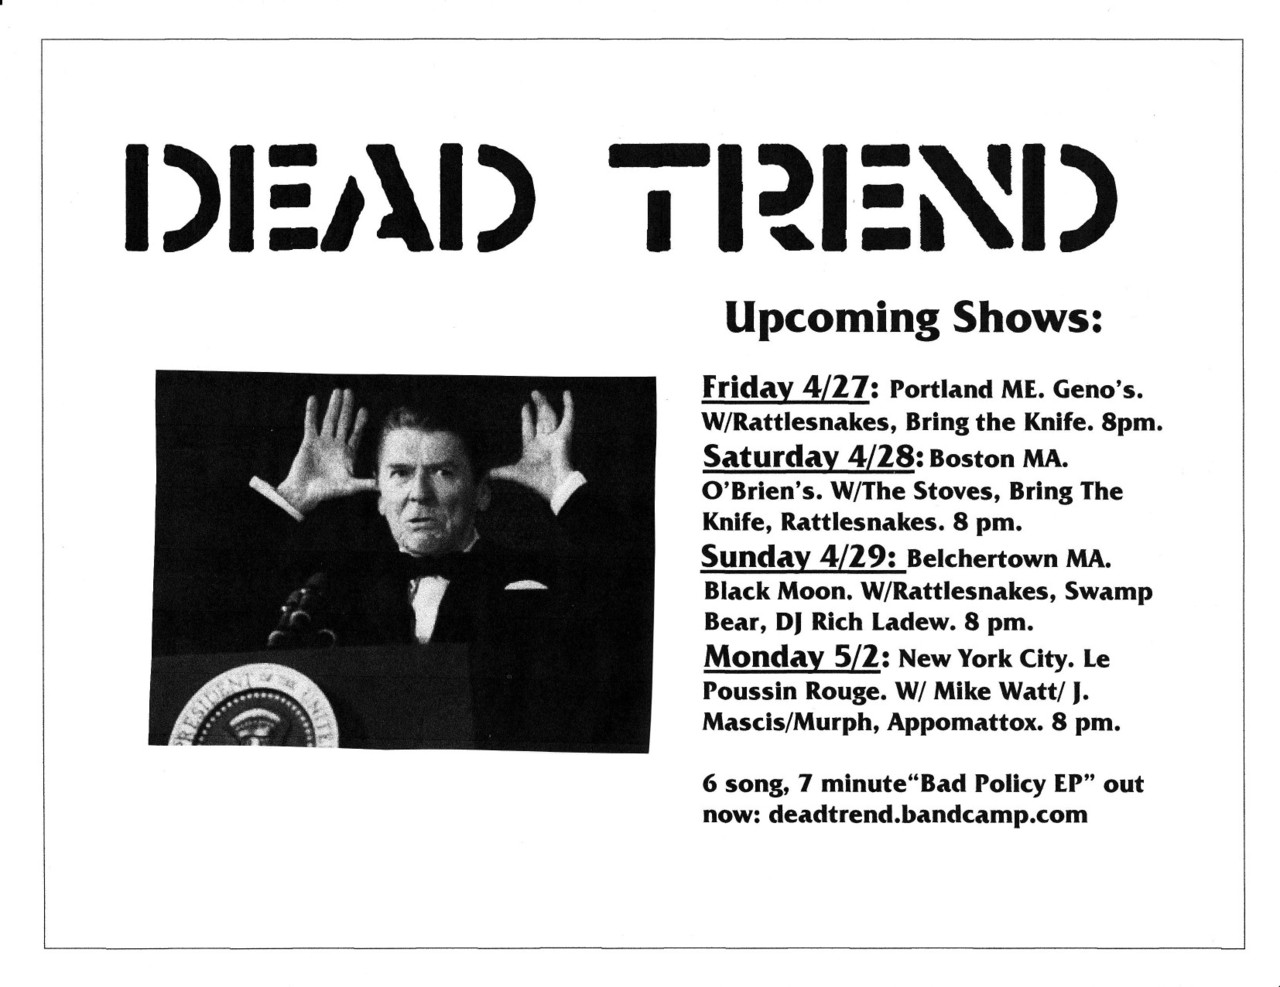 Upcoming Dead Trend shows.